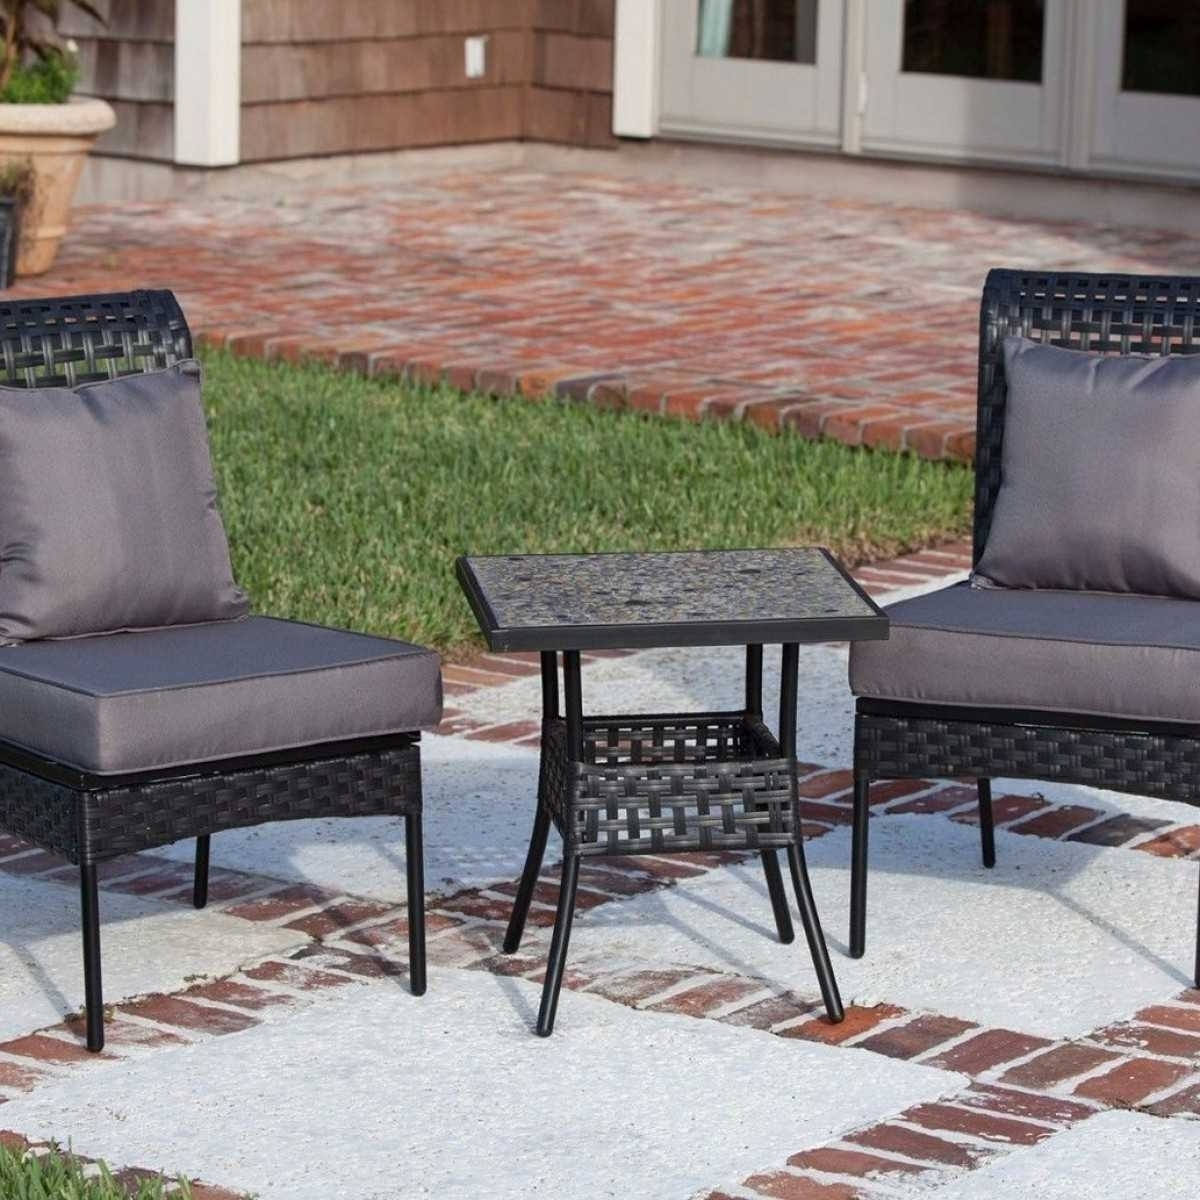 Most Current Patio Conversation Sets Under 200 With Regard To Cheap Patio Furniture Sets Under 200 Dining 2018 And Stunning Trends (View 5 of 15)